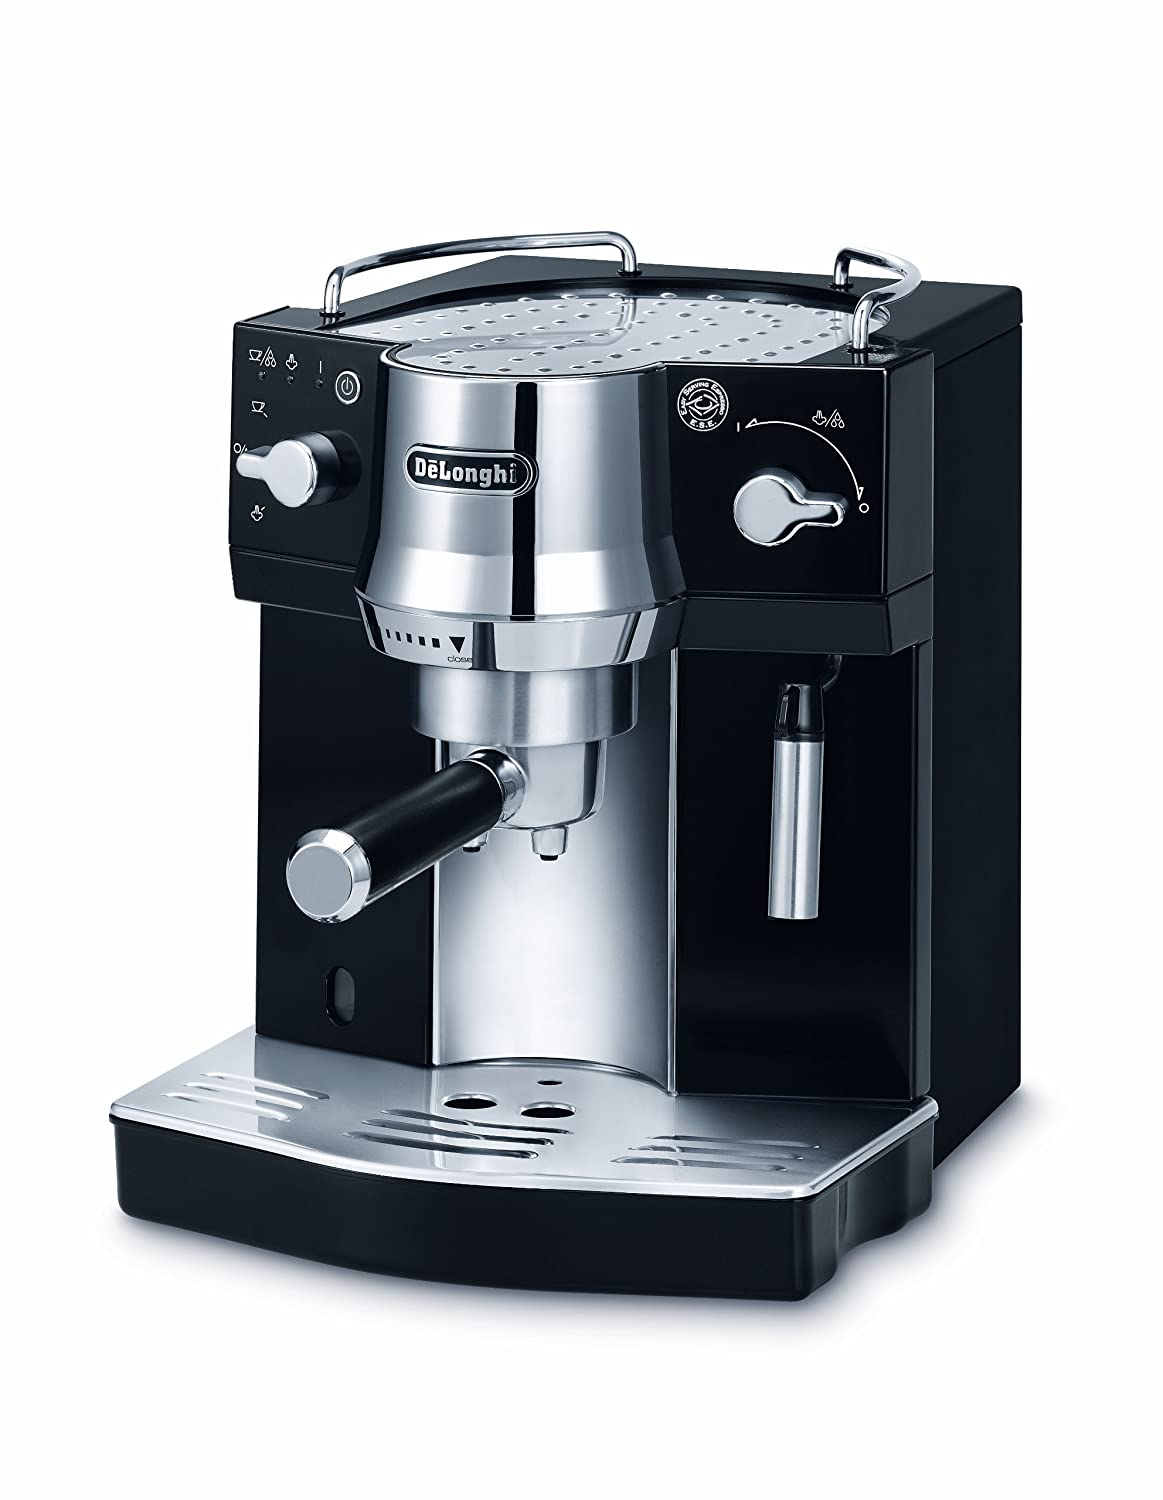 De'Longhi Pump EC820B Espresso Coffee Machine - Black (Certified Refurbished) De'Longhi